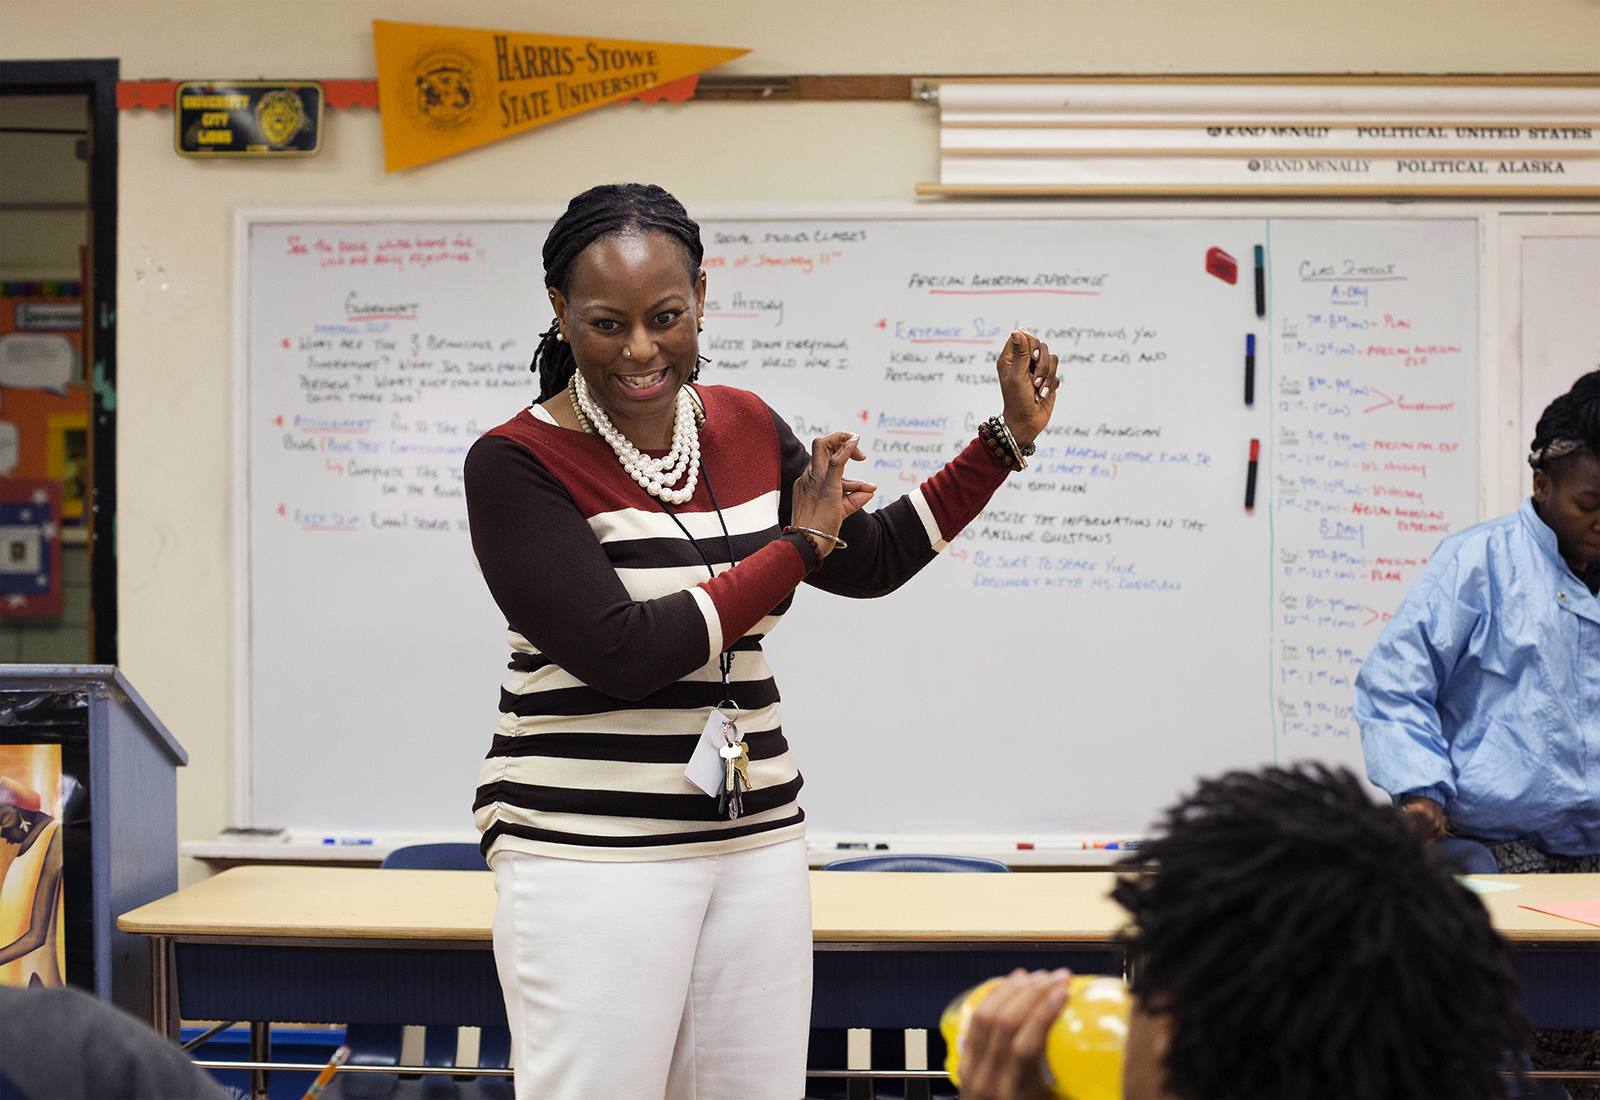 Darlene Donegan jokes with students in her government class at the Lieberman Learning Center, part of the University City School District. CAROLINA HIDALGO | ST. LOUIS PUBLIC RADIO